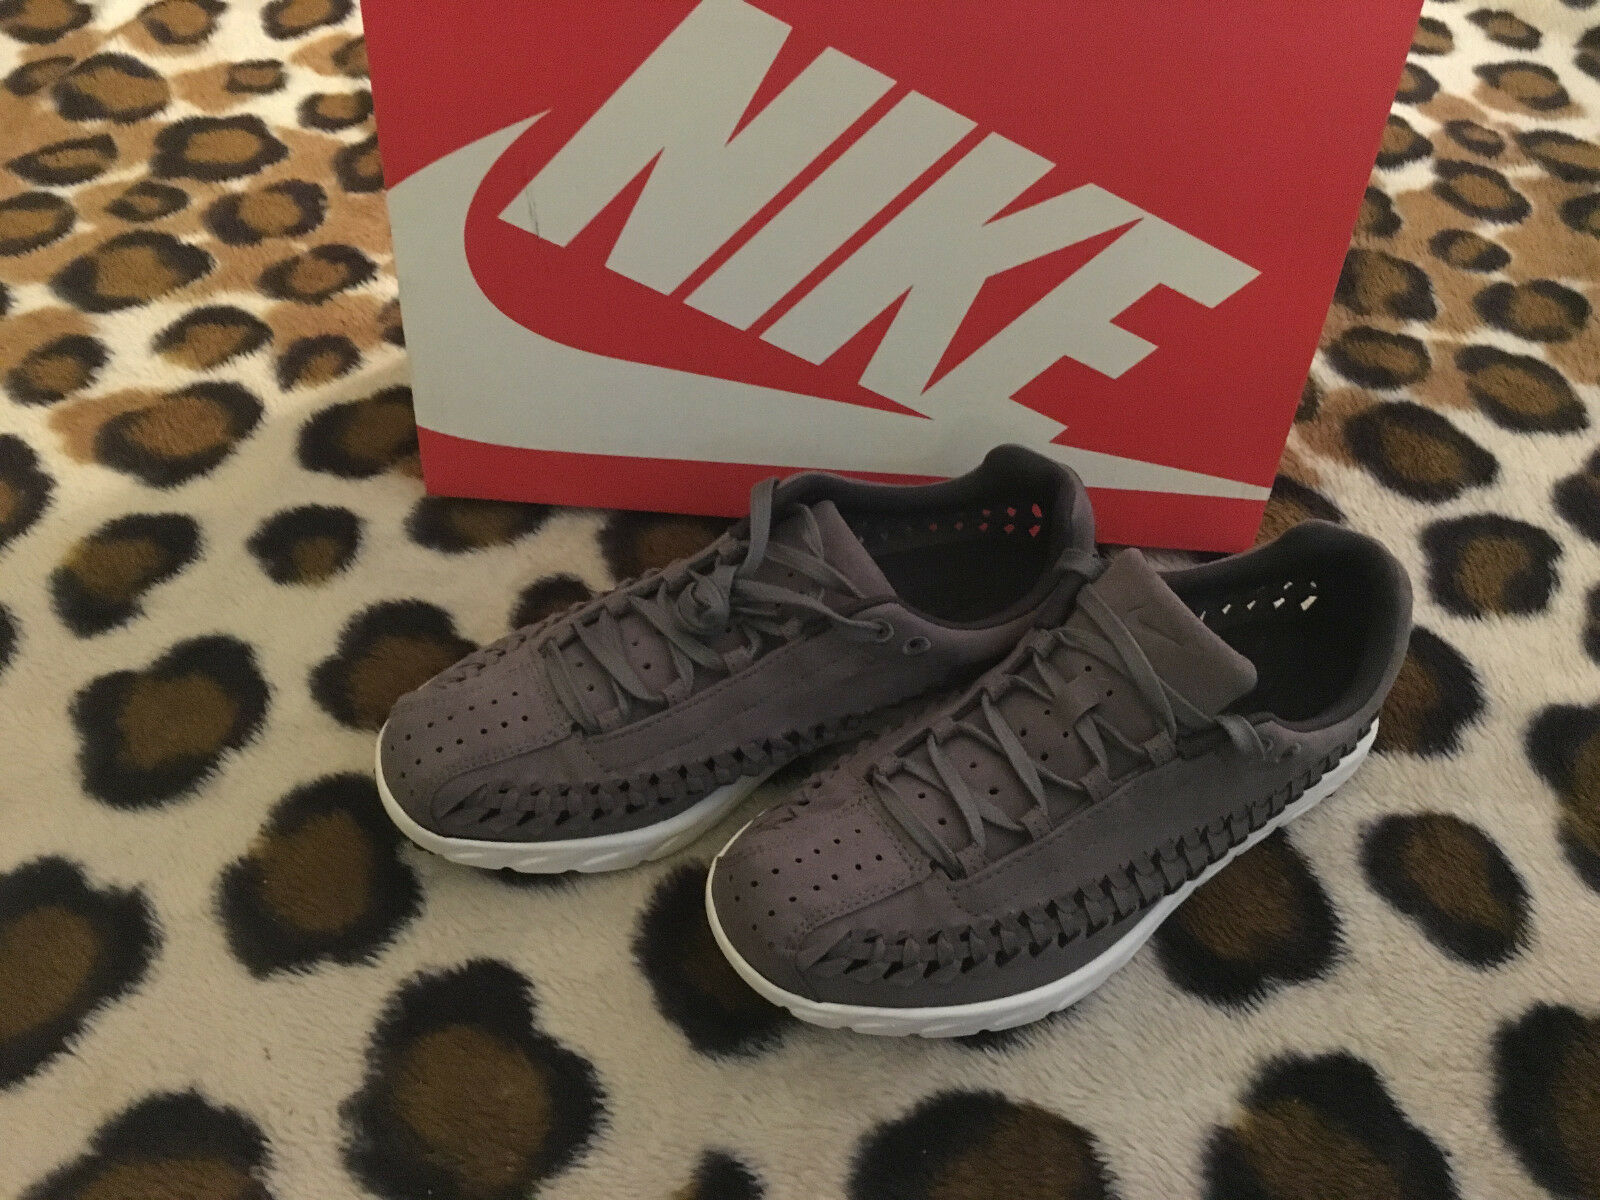 New Nike Mayfly Woven men sz 7.5 tumbled grey anthracite